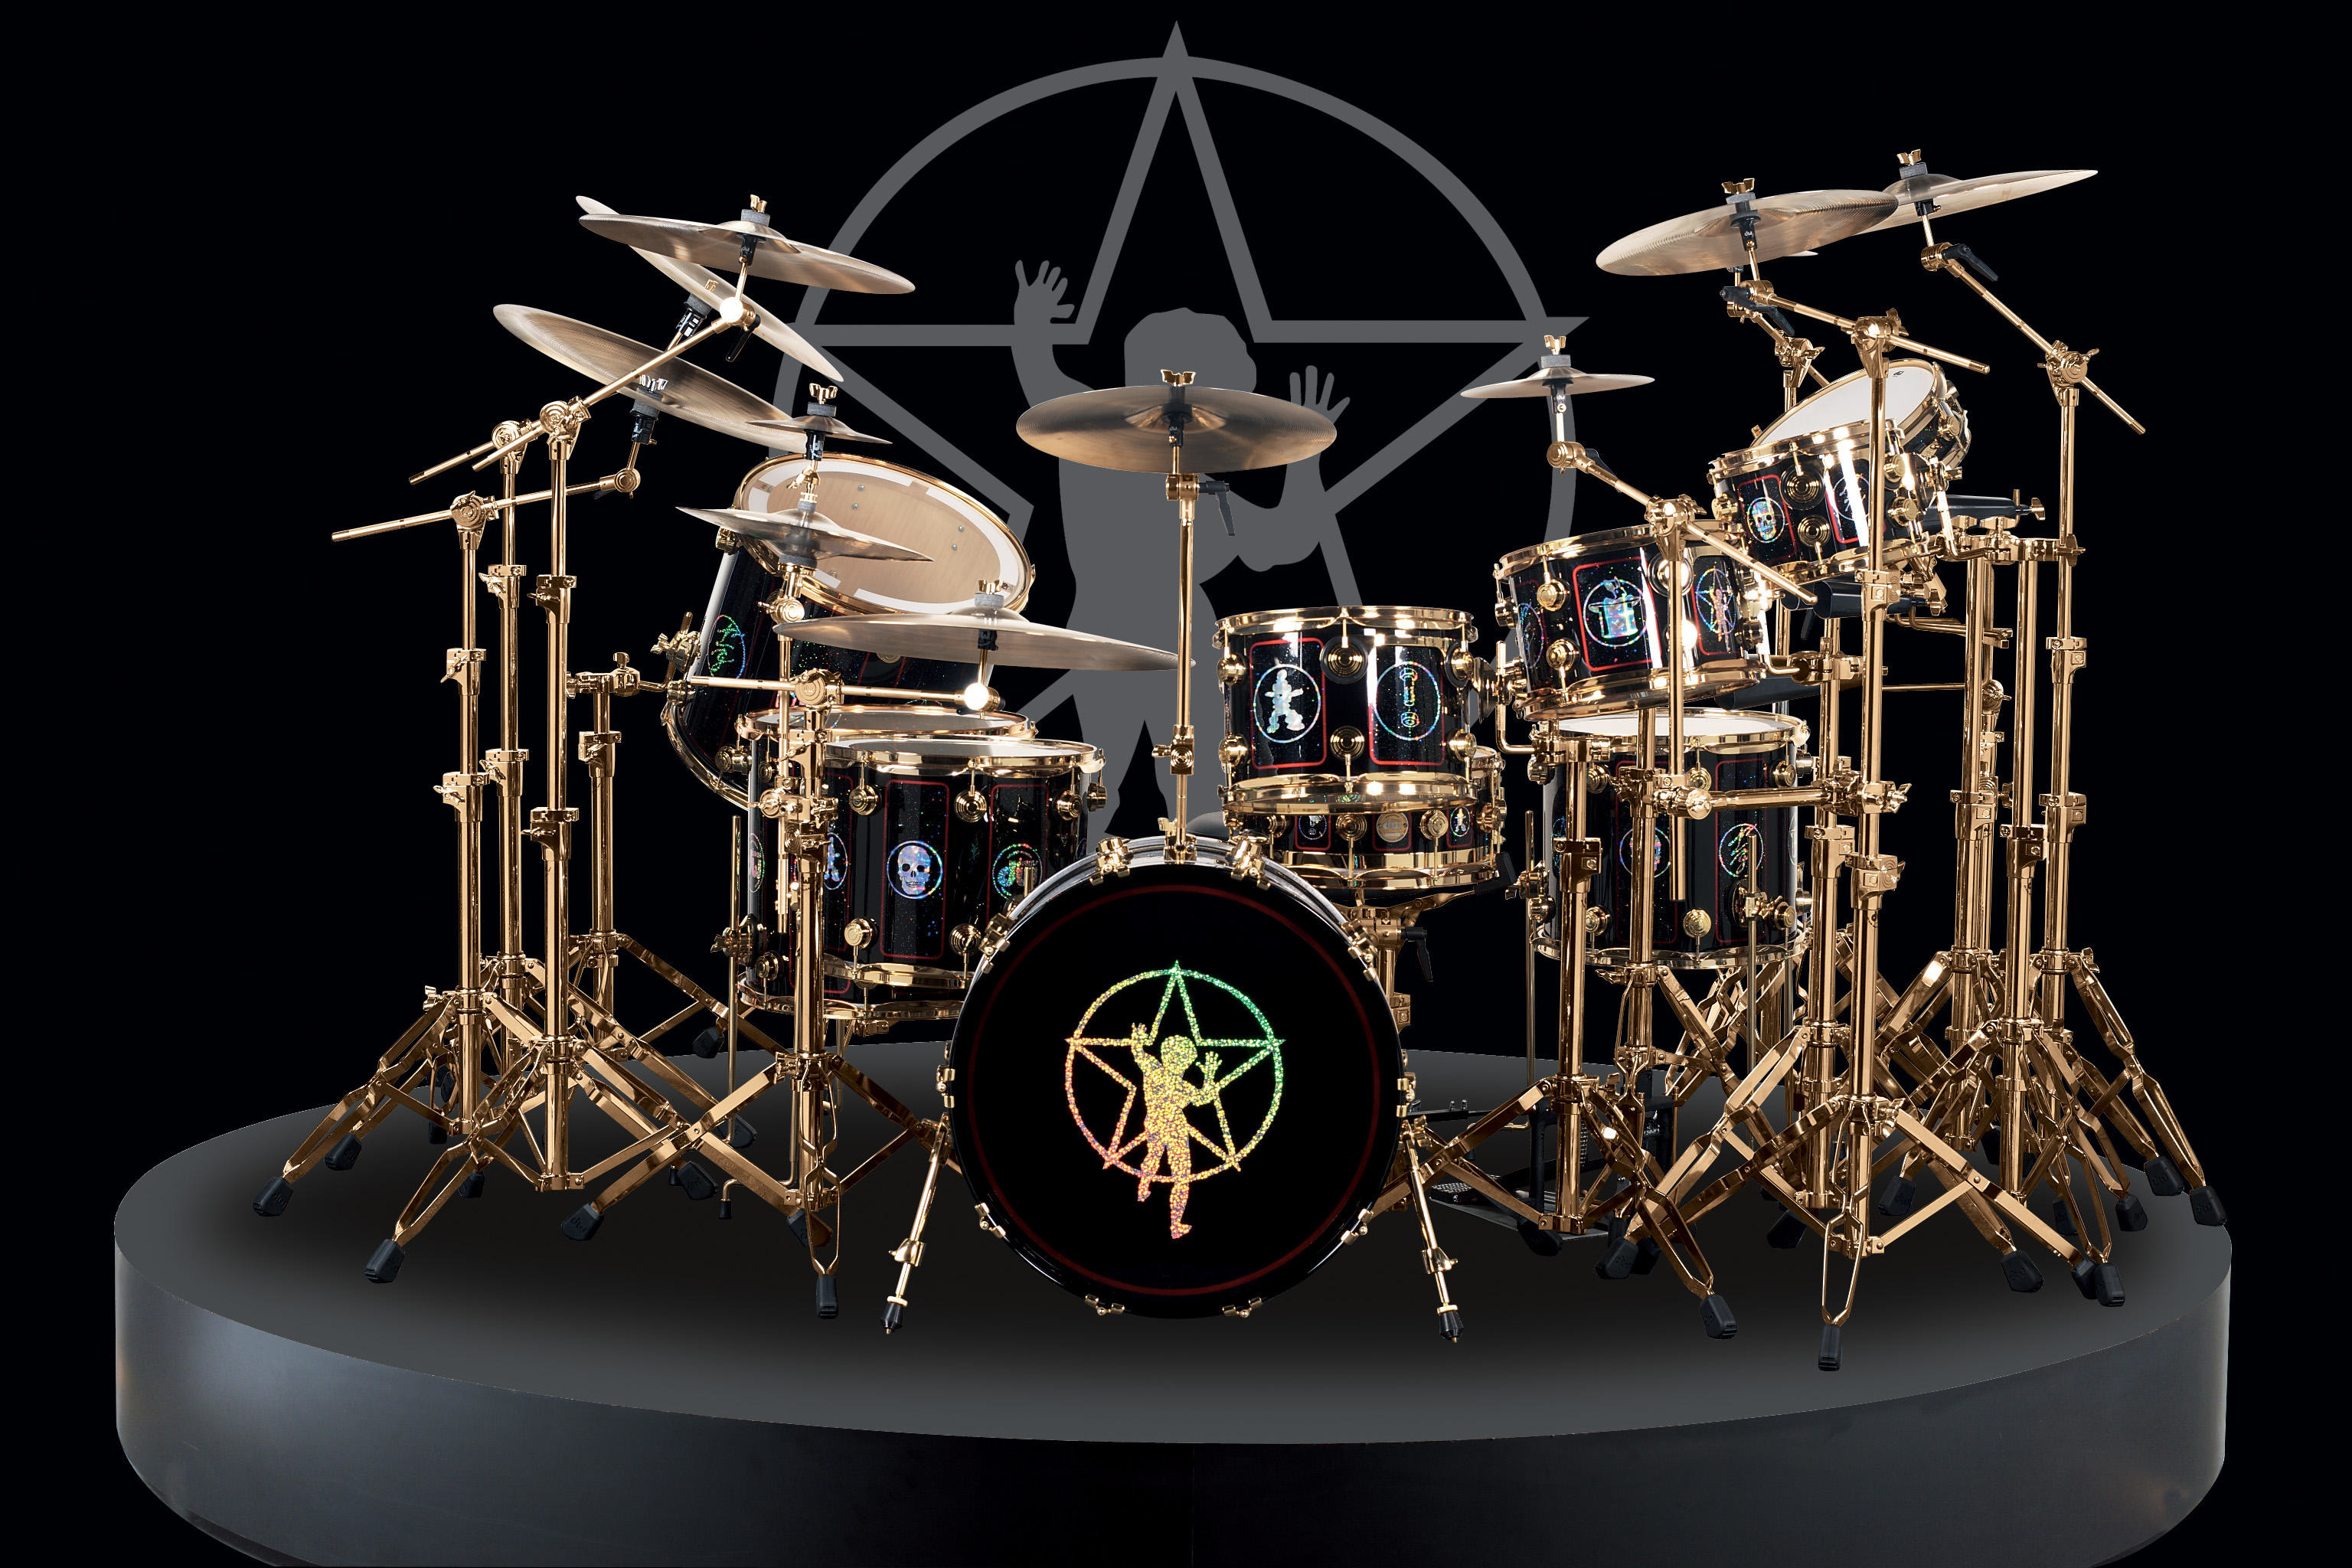 3072x2048 Drum Set Background For wallpaper thumb